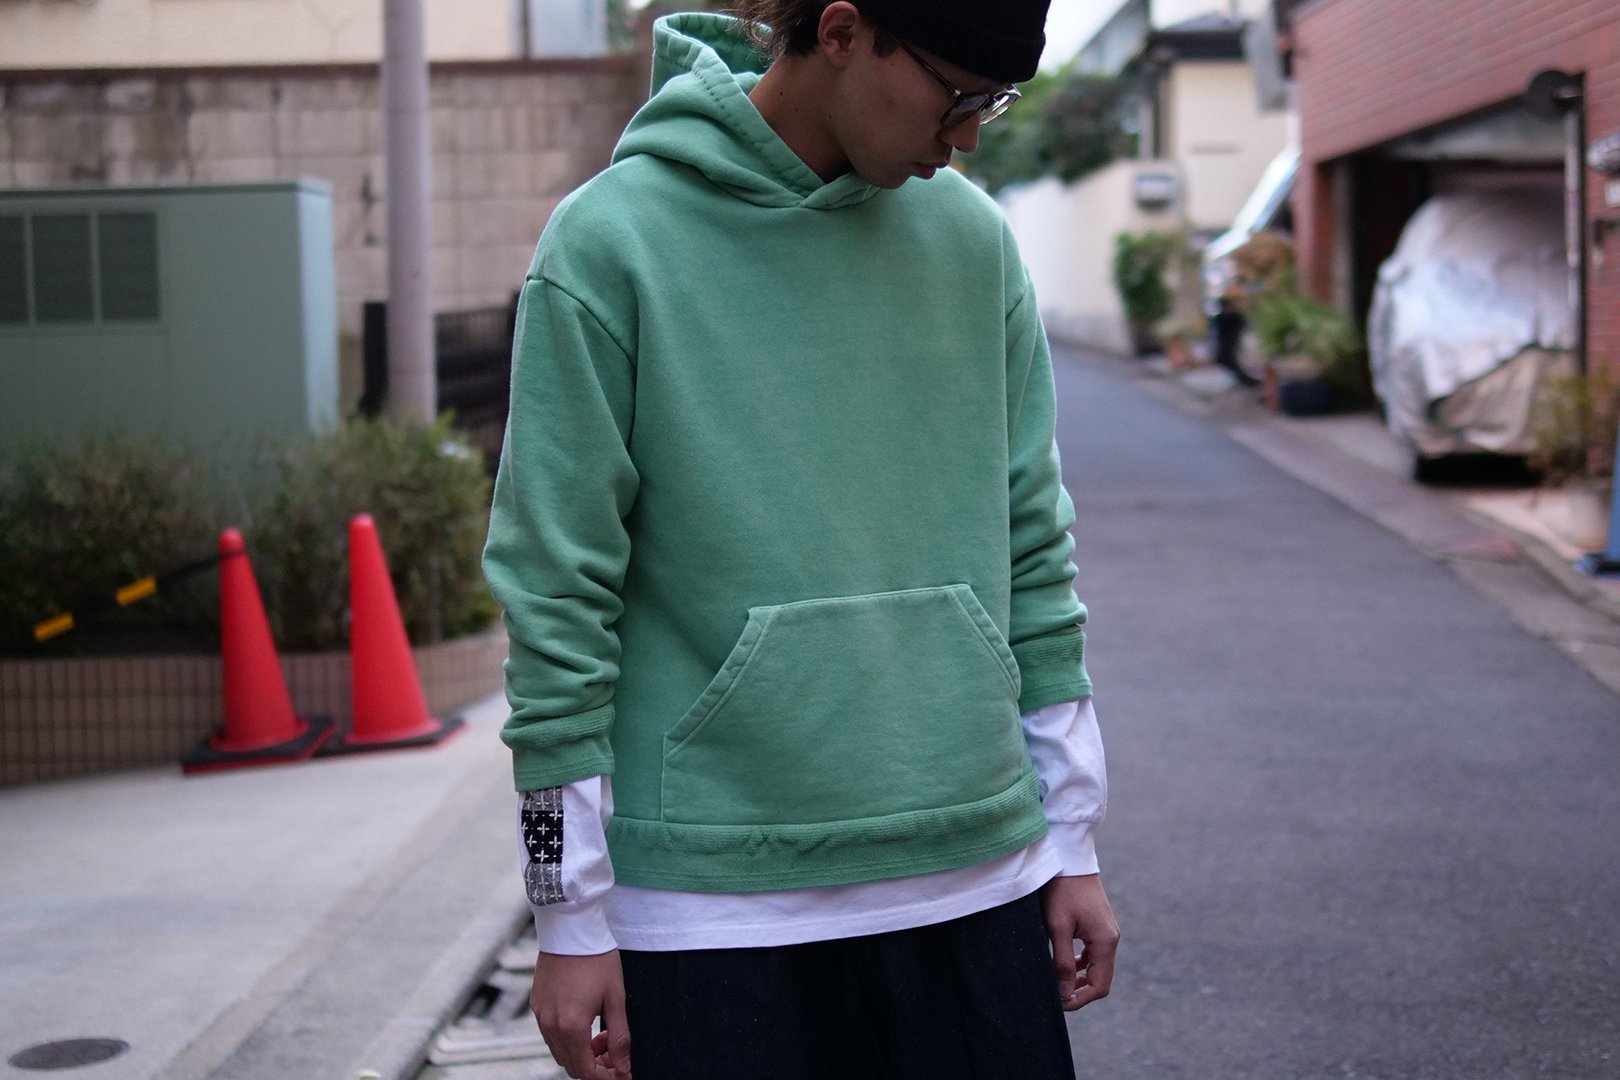 <img class='new_mark_img1' src='https://img.shop-pro.jp/img/new/icons5.gif' style='border:none;display:inline;margin:0px;padding:0px;width:auto;' />KUON / SASHIKO PULLOVER HOODIE